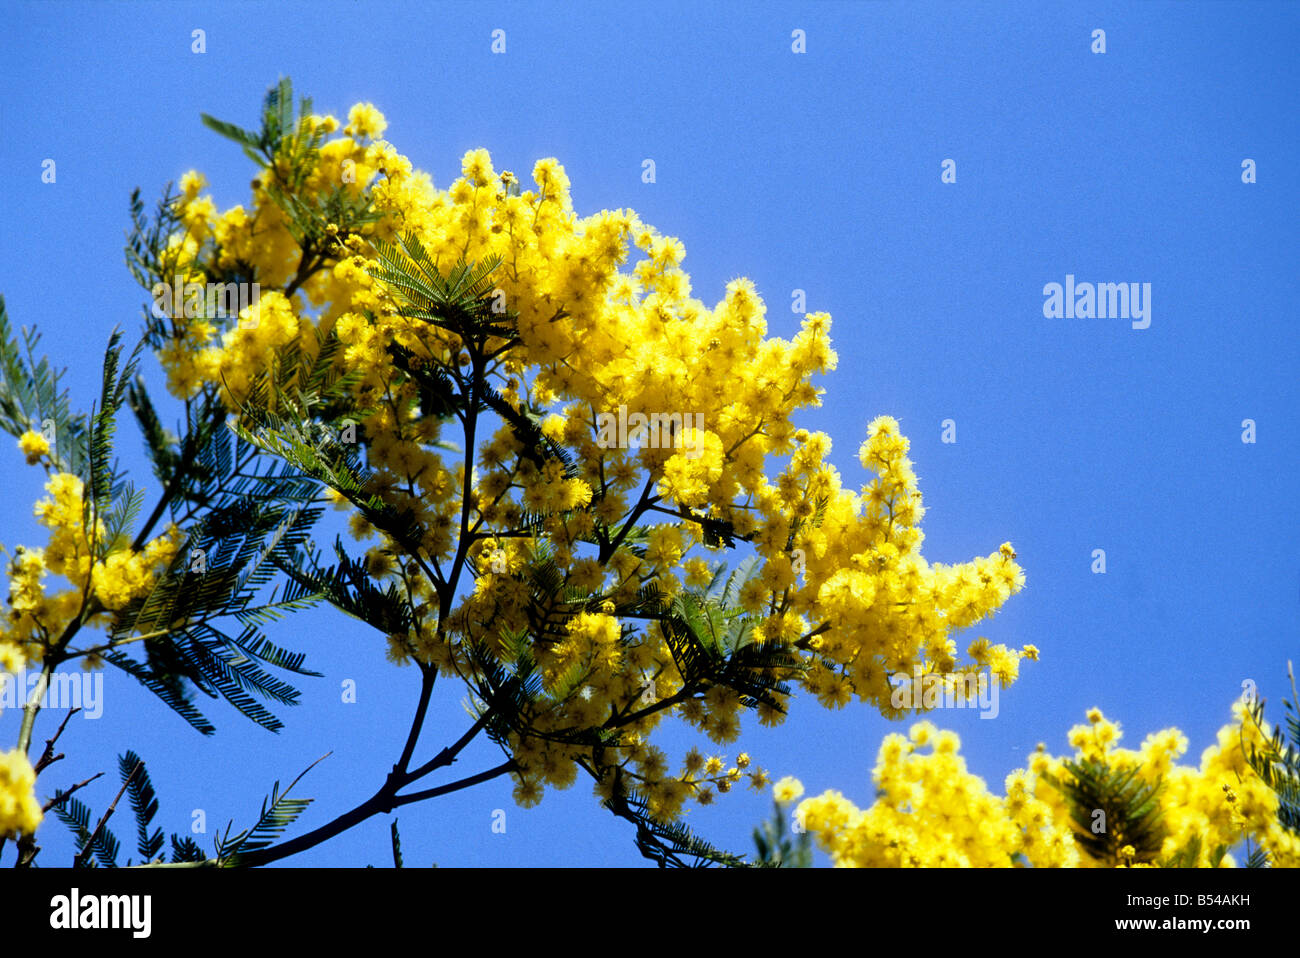 Mimosa yellow mediterranean winter flower stock photos mimosa mimosa yellow mediterranean winter flower stock image mightylinksfo